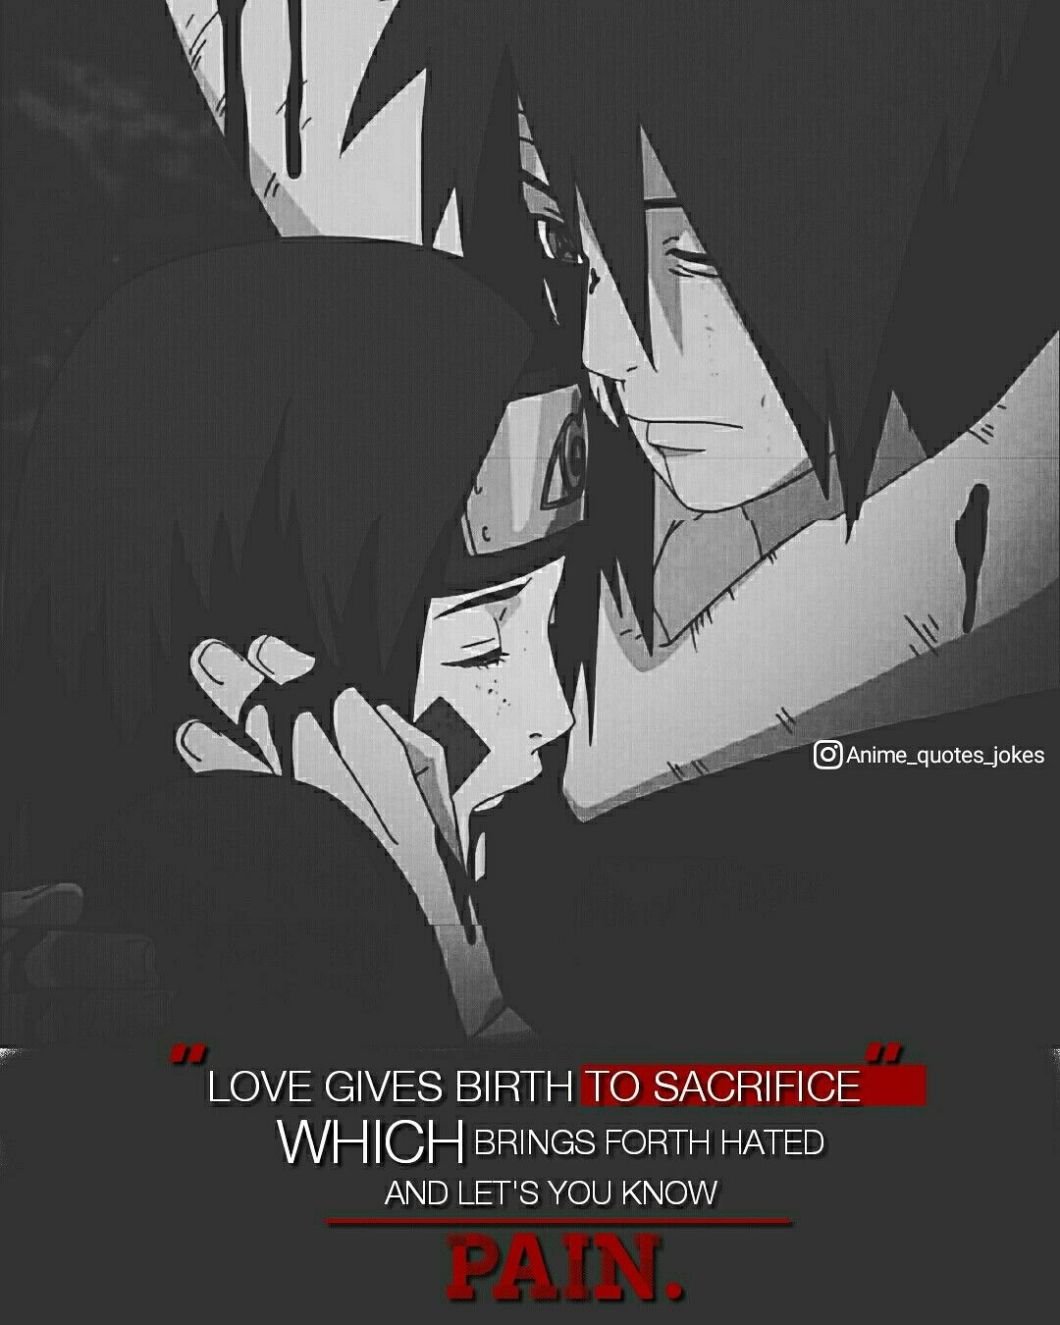 obito uchiha quotes